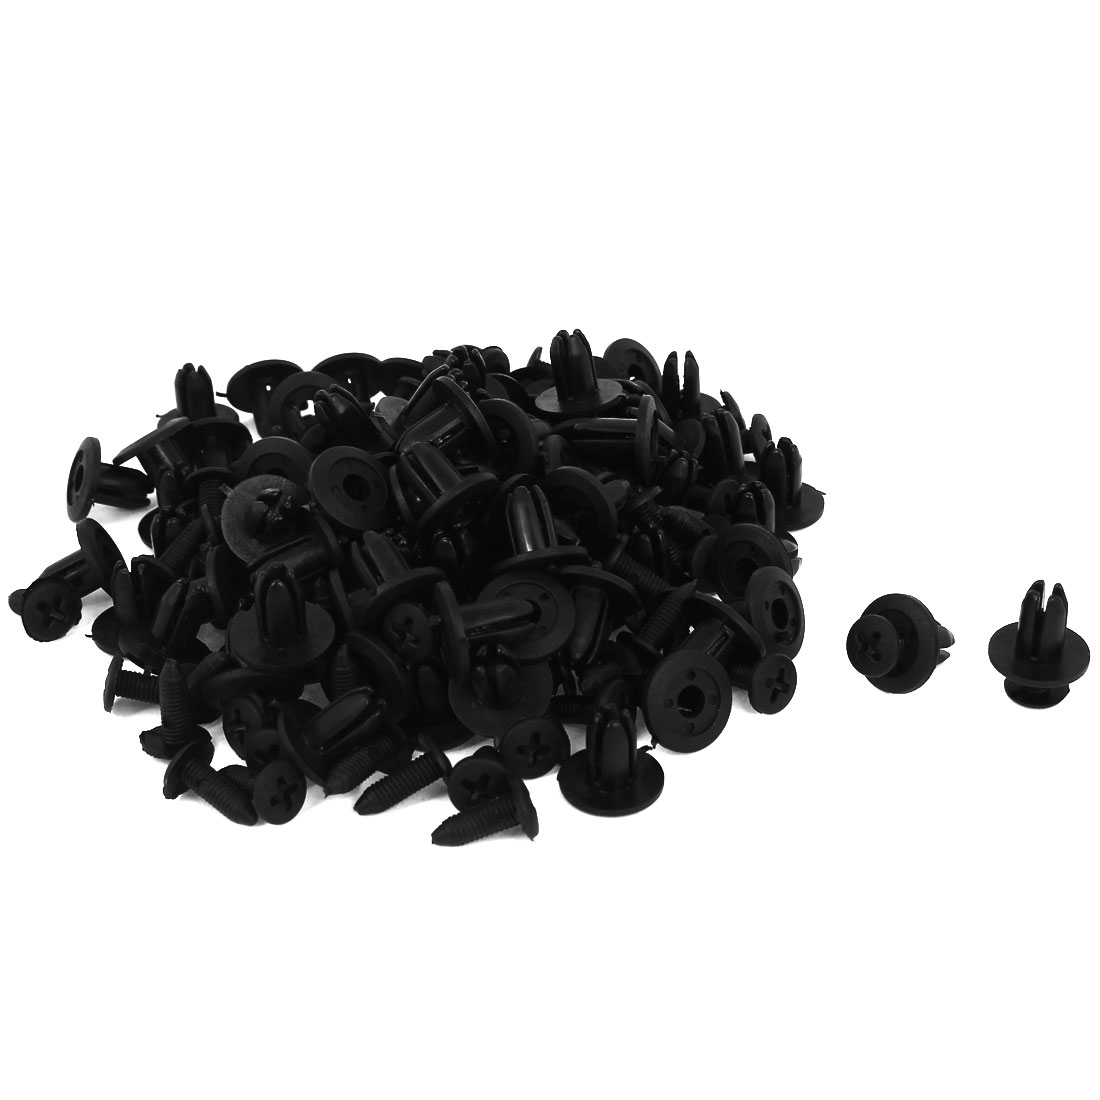 100 Pcs Black Plastic Rivet Trim Fastener Moulding Clips 7mm x 11mm x 15mm